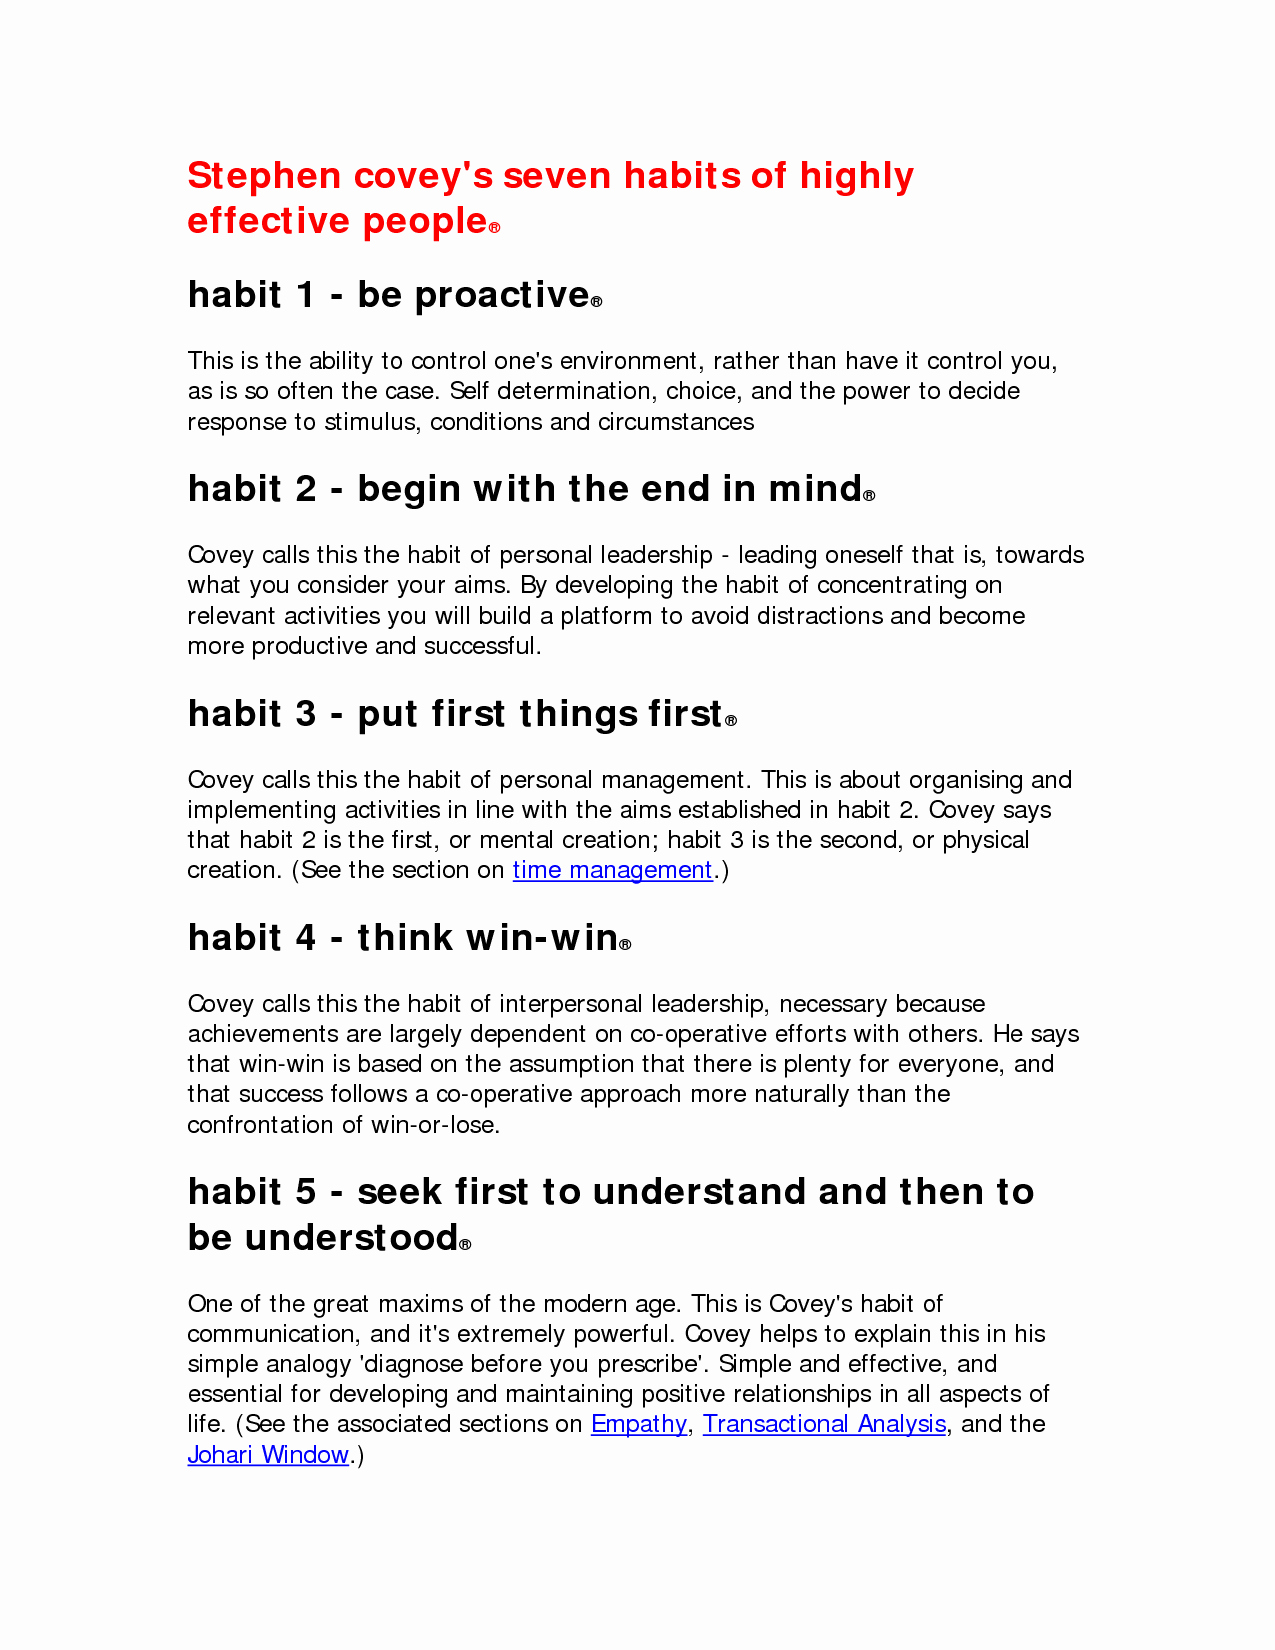 7 Habits Worksheet Pdf Awesome Other Worksheet Category Page 504 Worksheeto